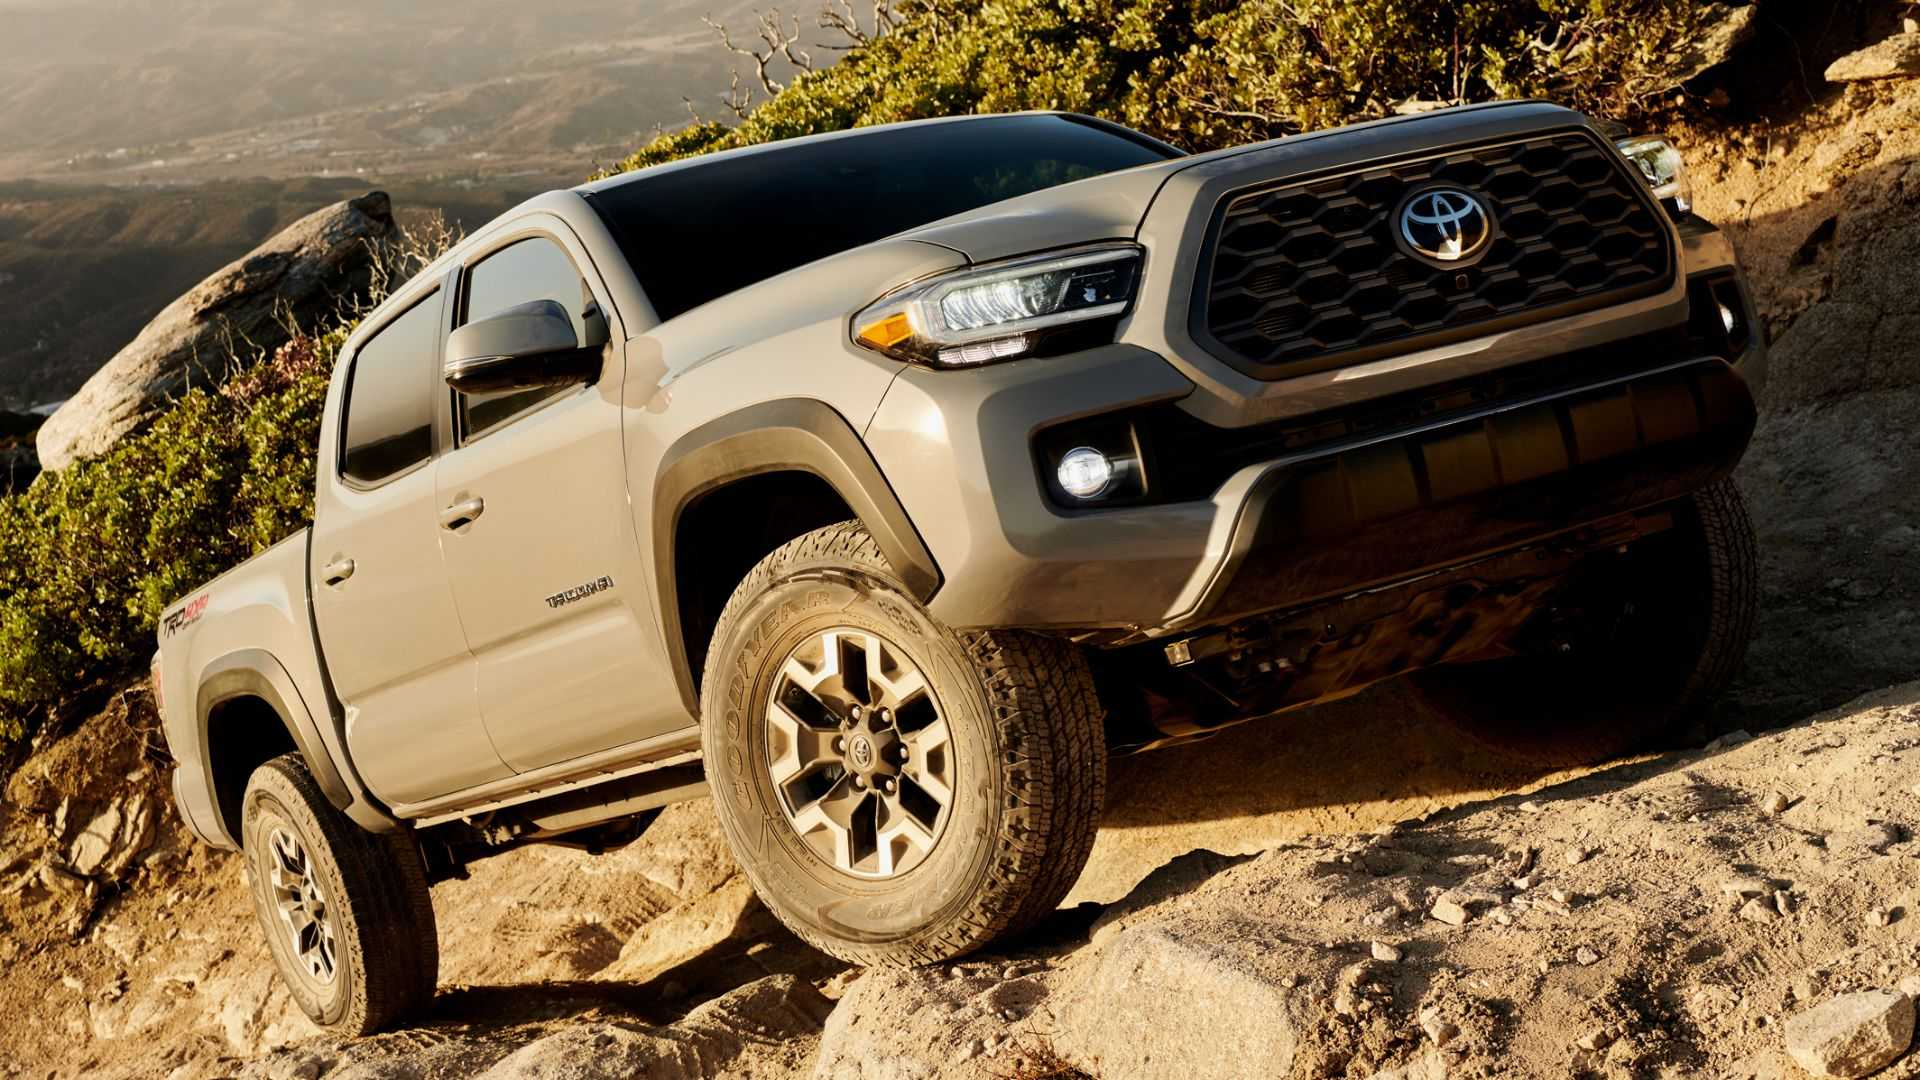 To maintain consumer interest, Toyota has done a quick facelift of the series